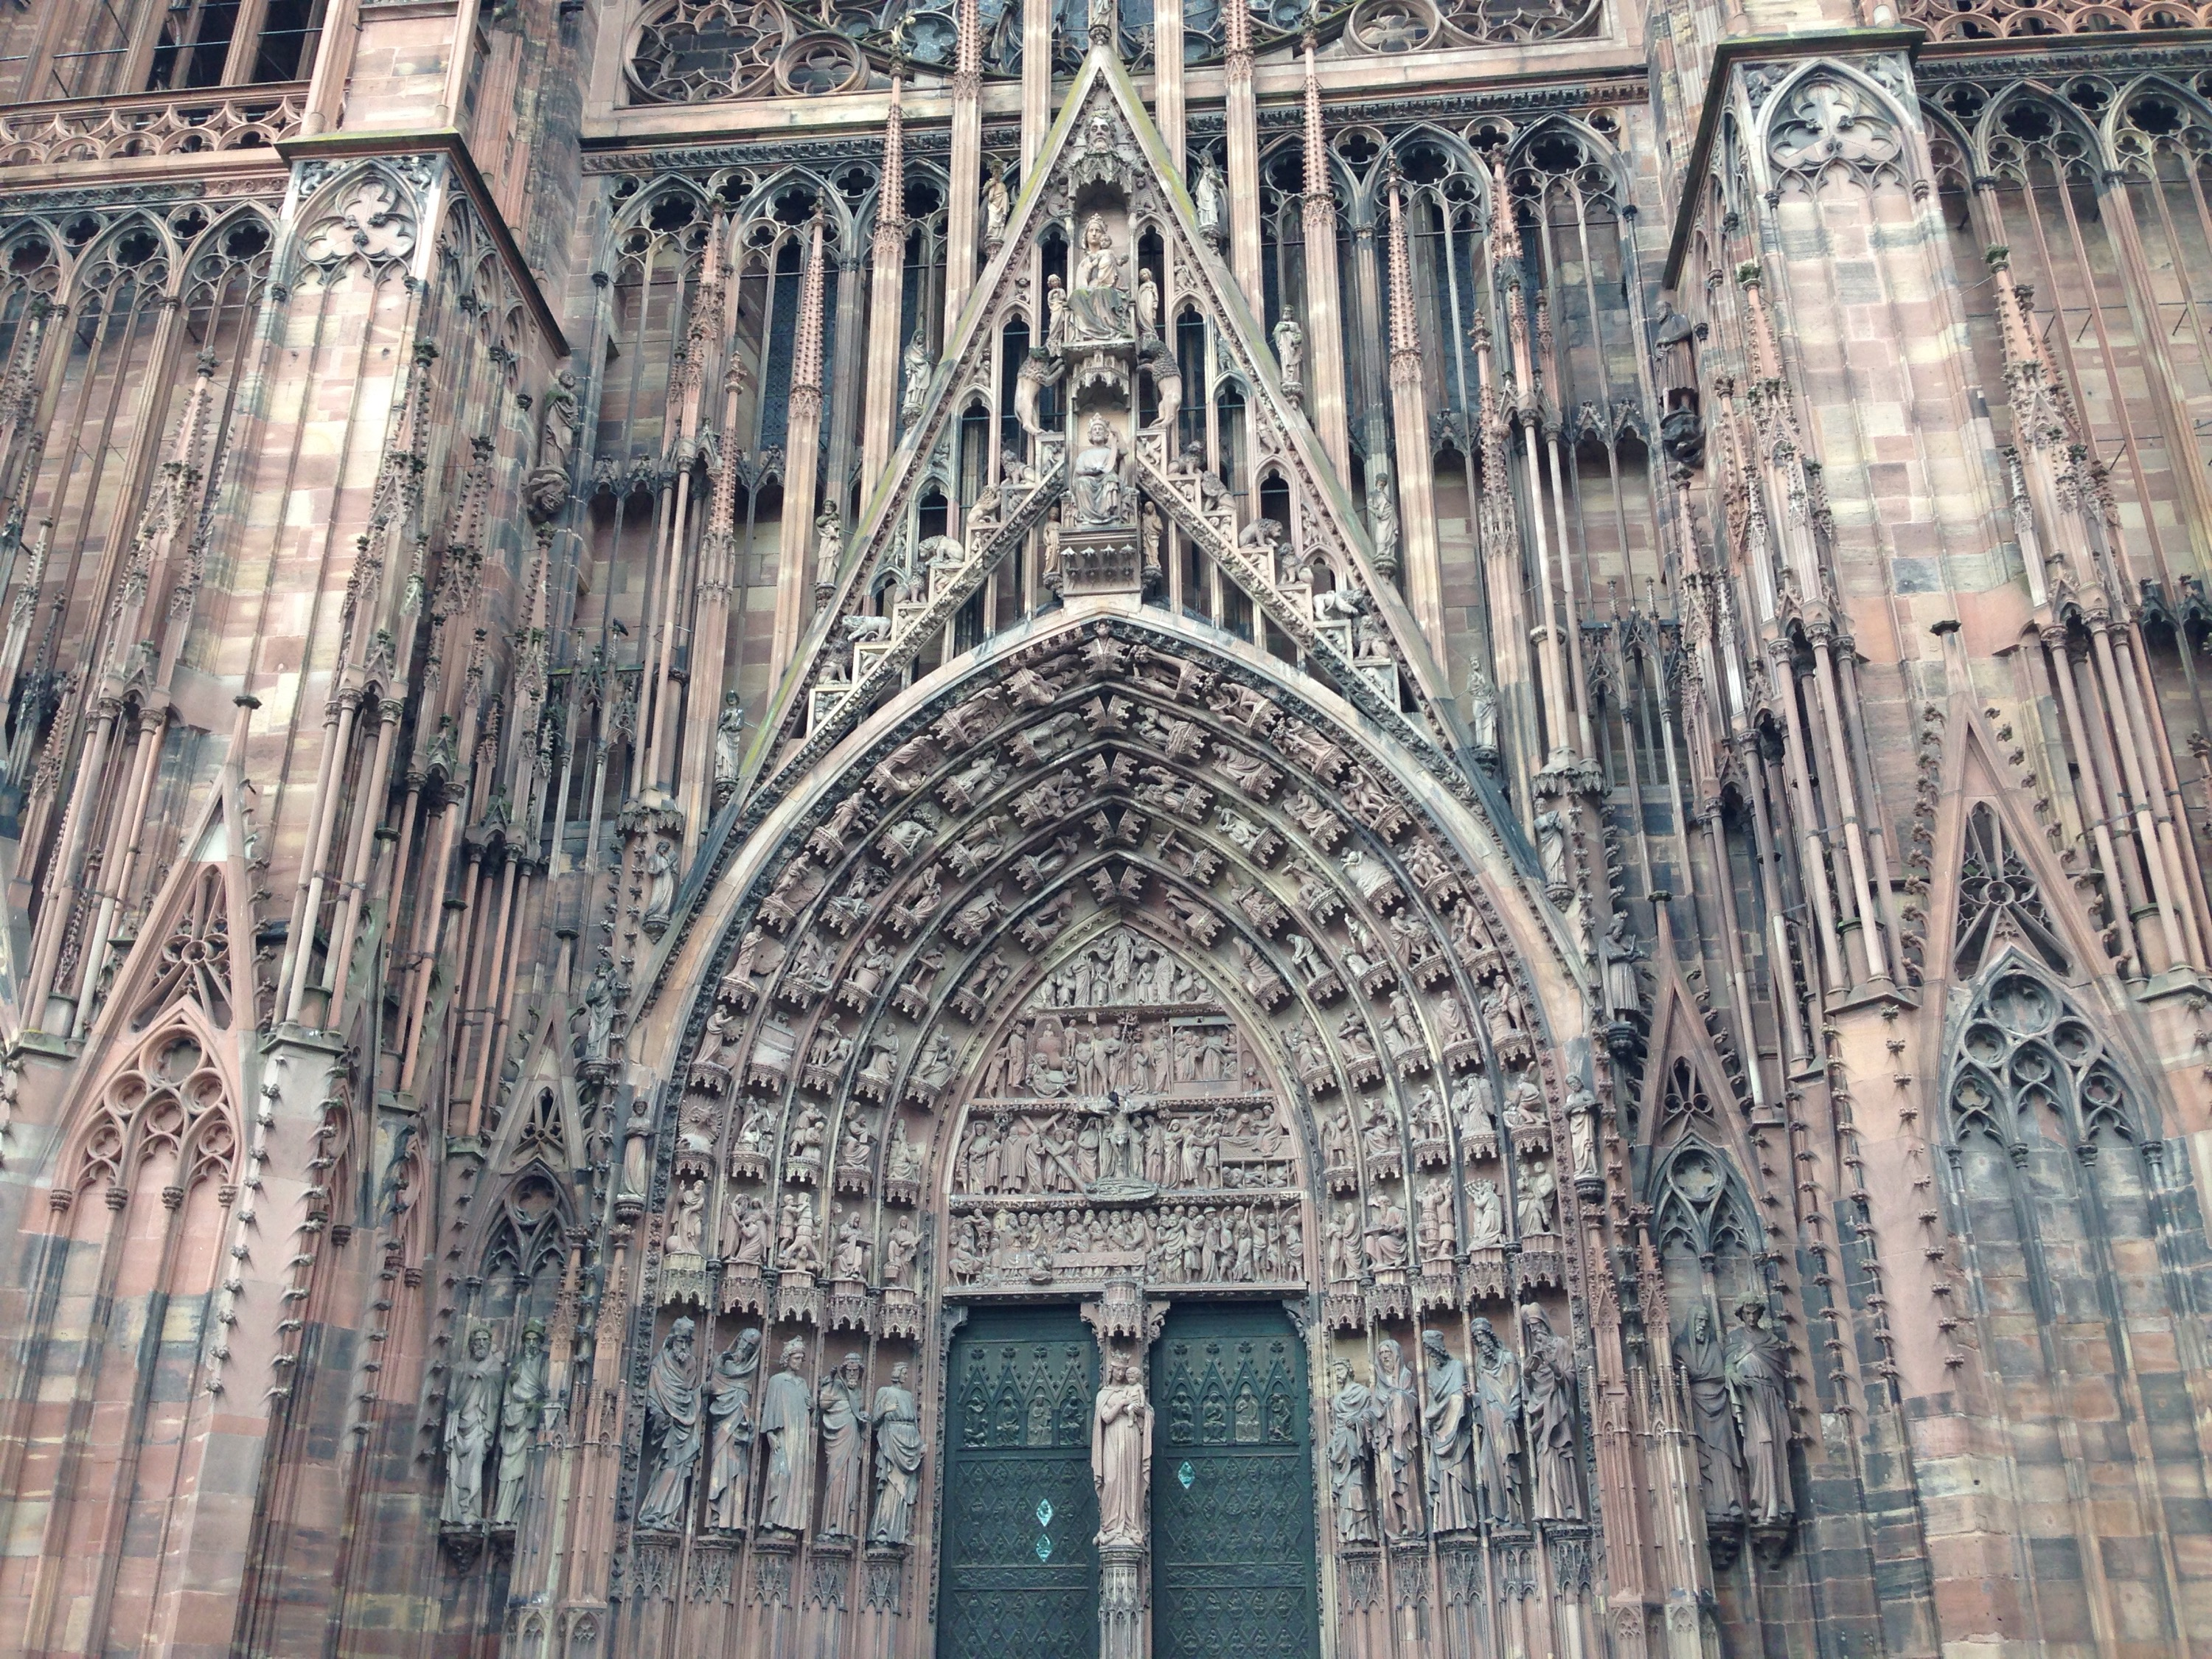 strasbourg cathedral entrance doorway